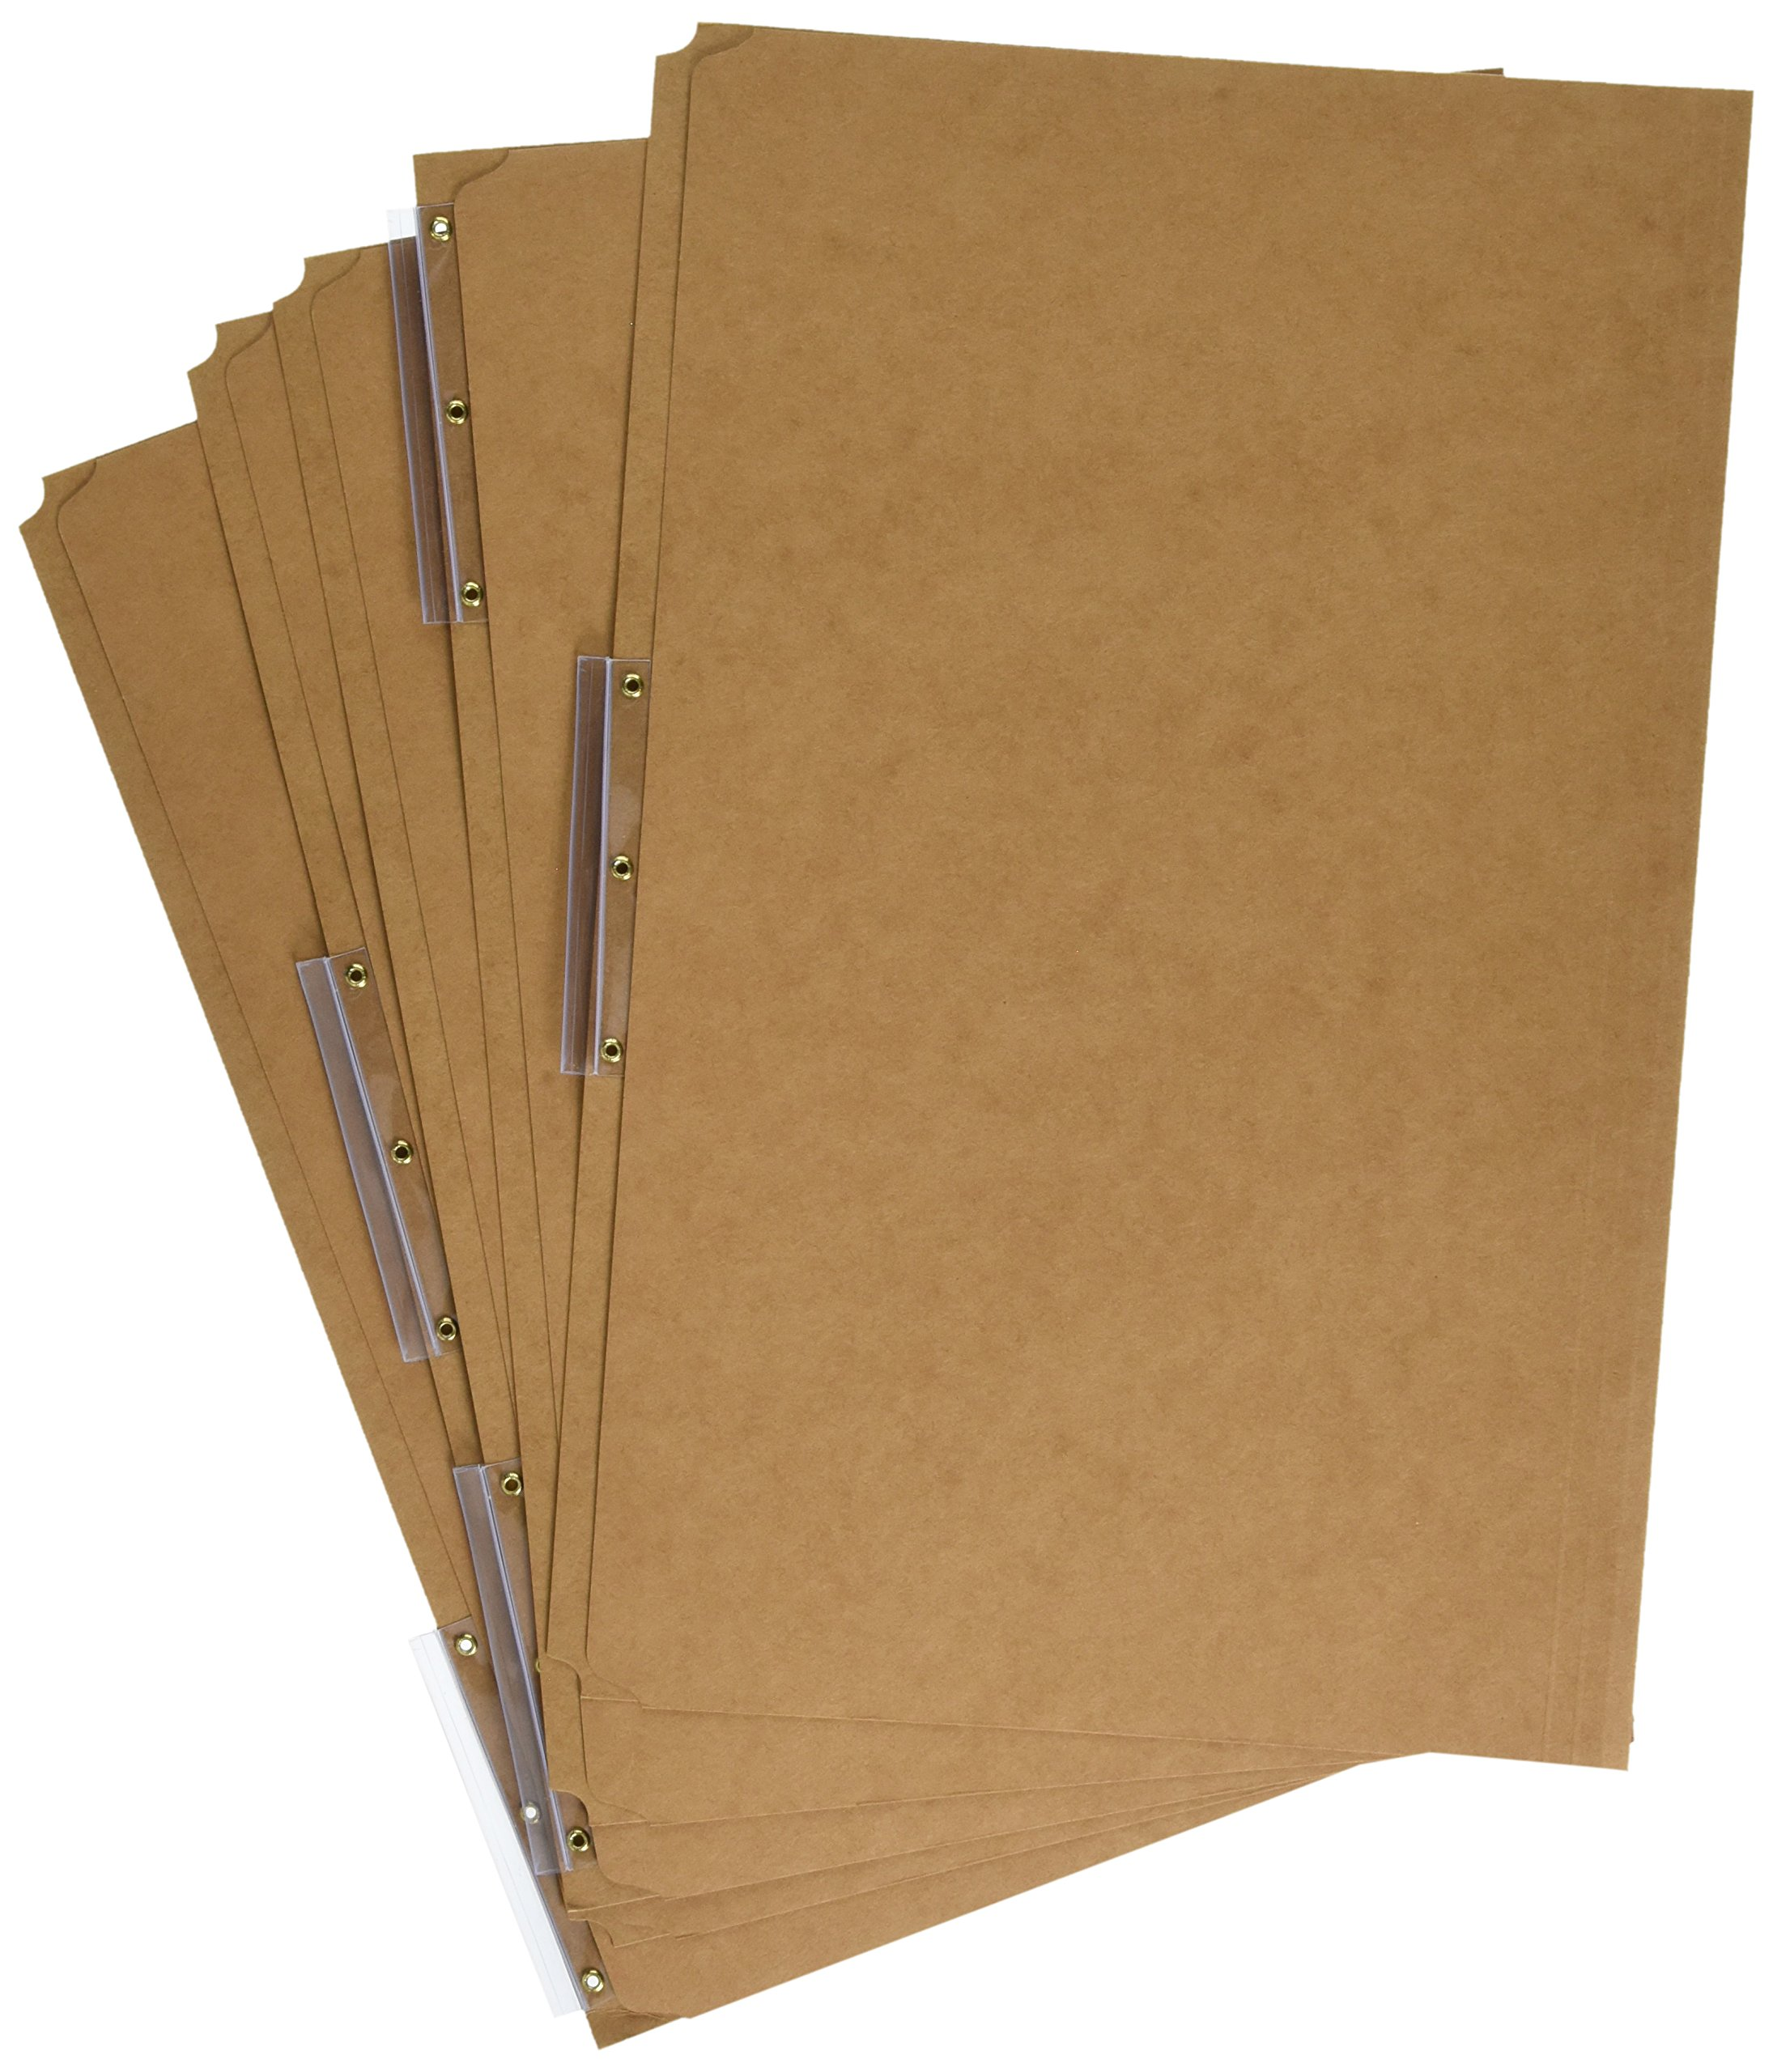 Pendaflex AC183-1/3 Pendaflex Kraft Angled Tab File Folders, 1/3 Cut, Top Tab, Legal, Brown, 50/Bx